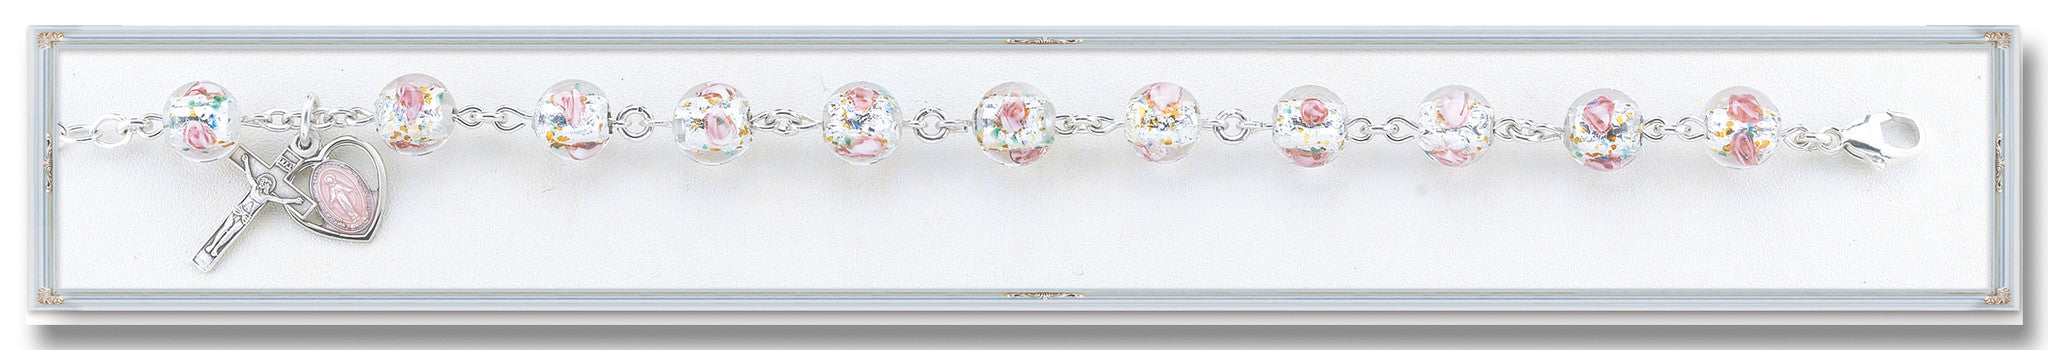 rose_glass_sterling_bracelet